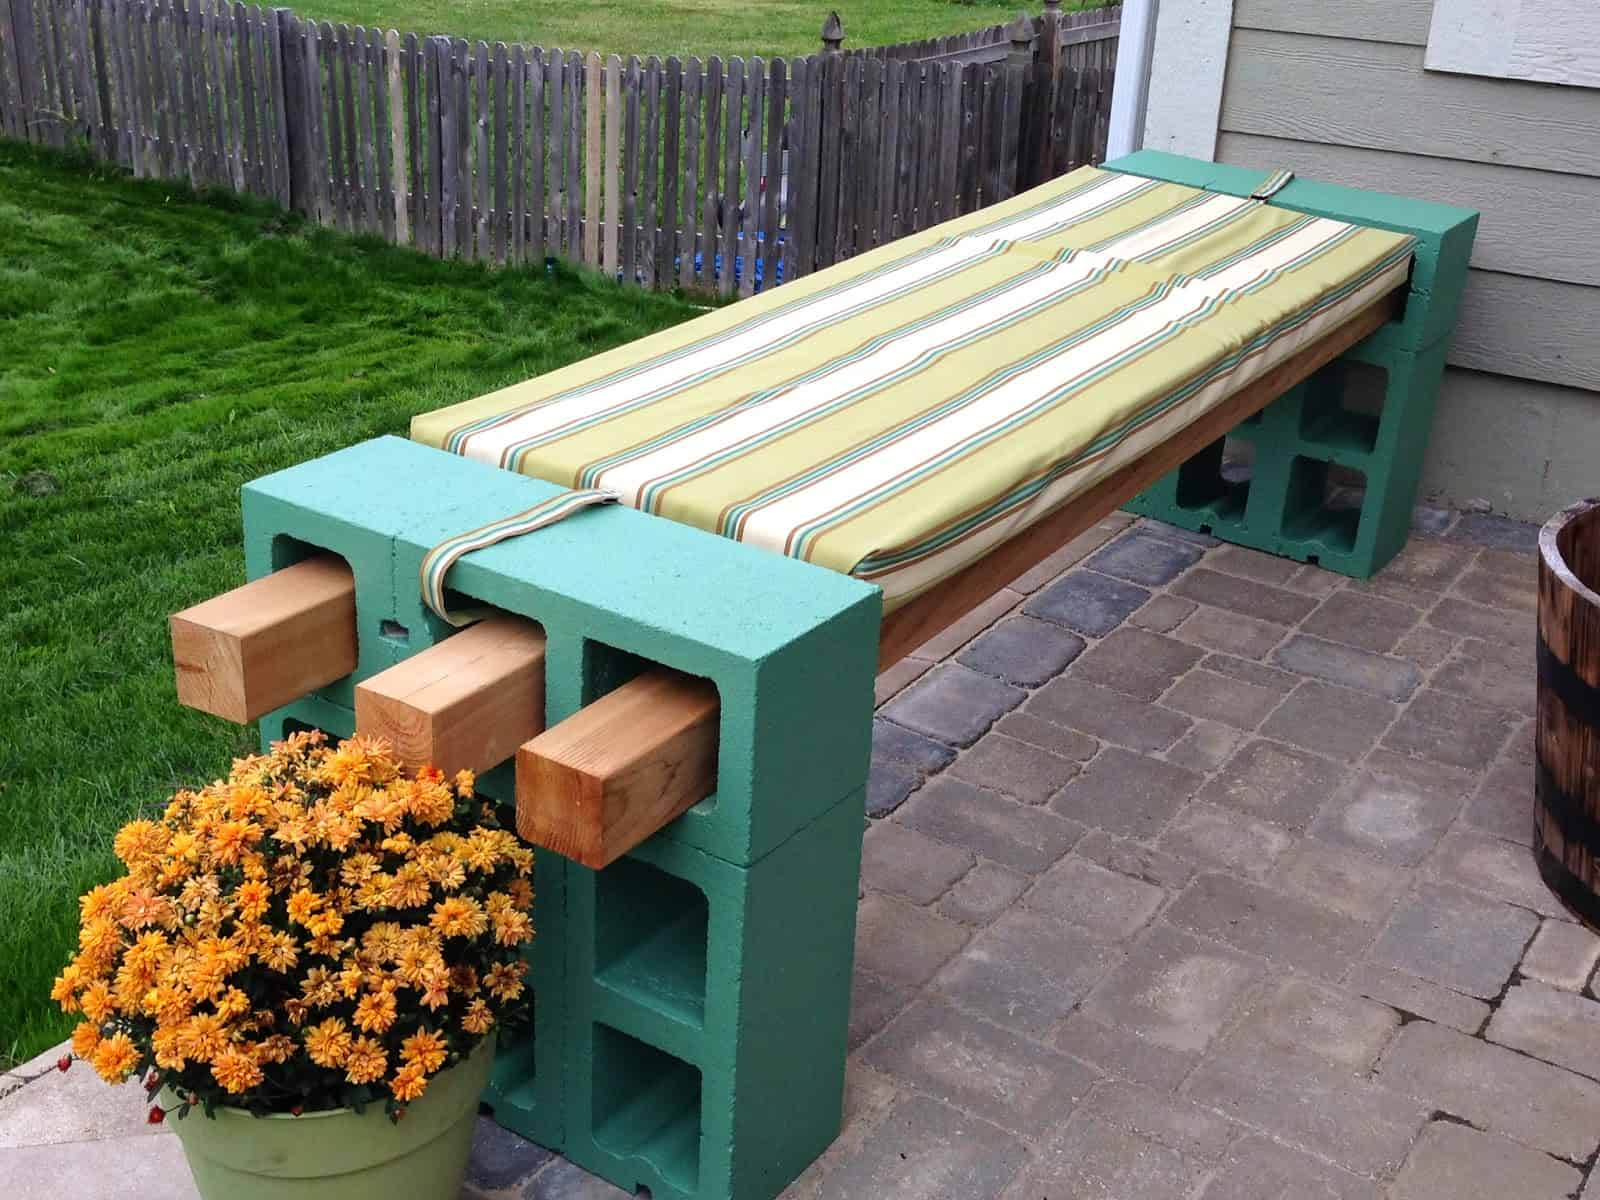 green lowes cinder blocks outdoor bench with cushion seat for outdoor decoration ideas lowes cinder block cinder color cost of cinder blocks decorative concrete blocks home depot lowes flagstone